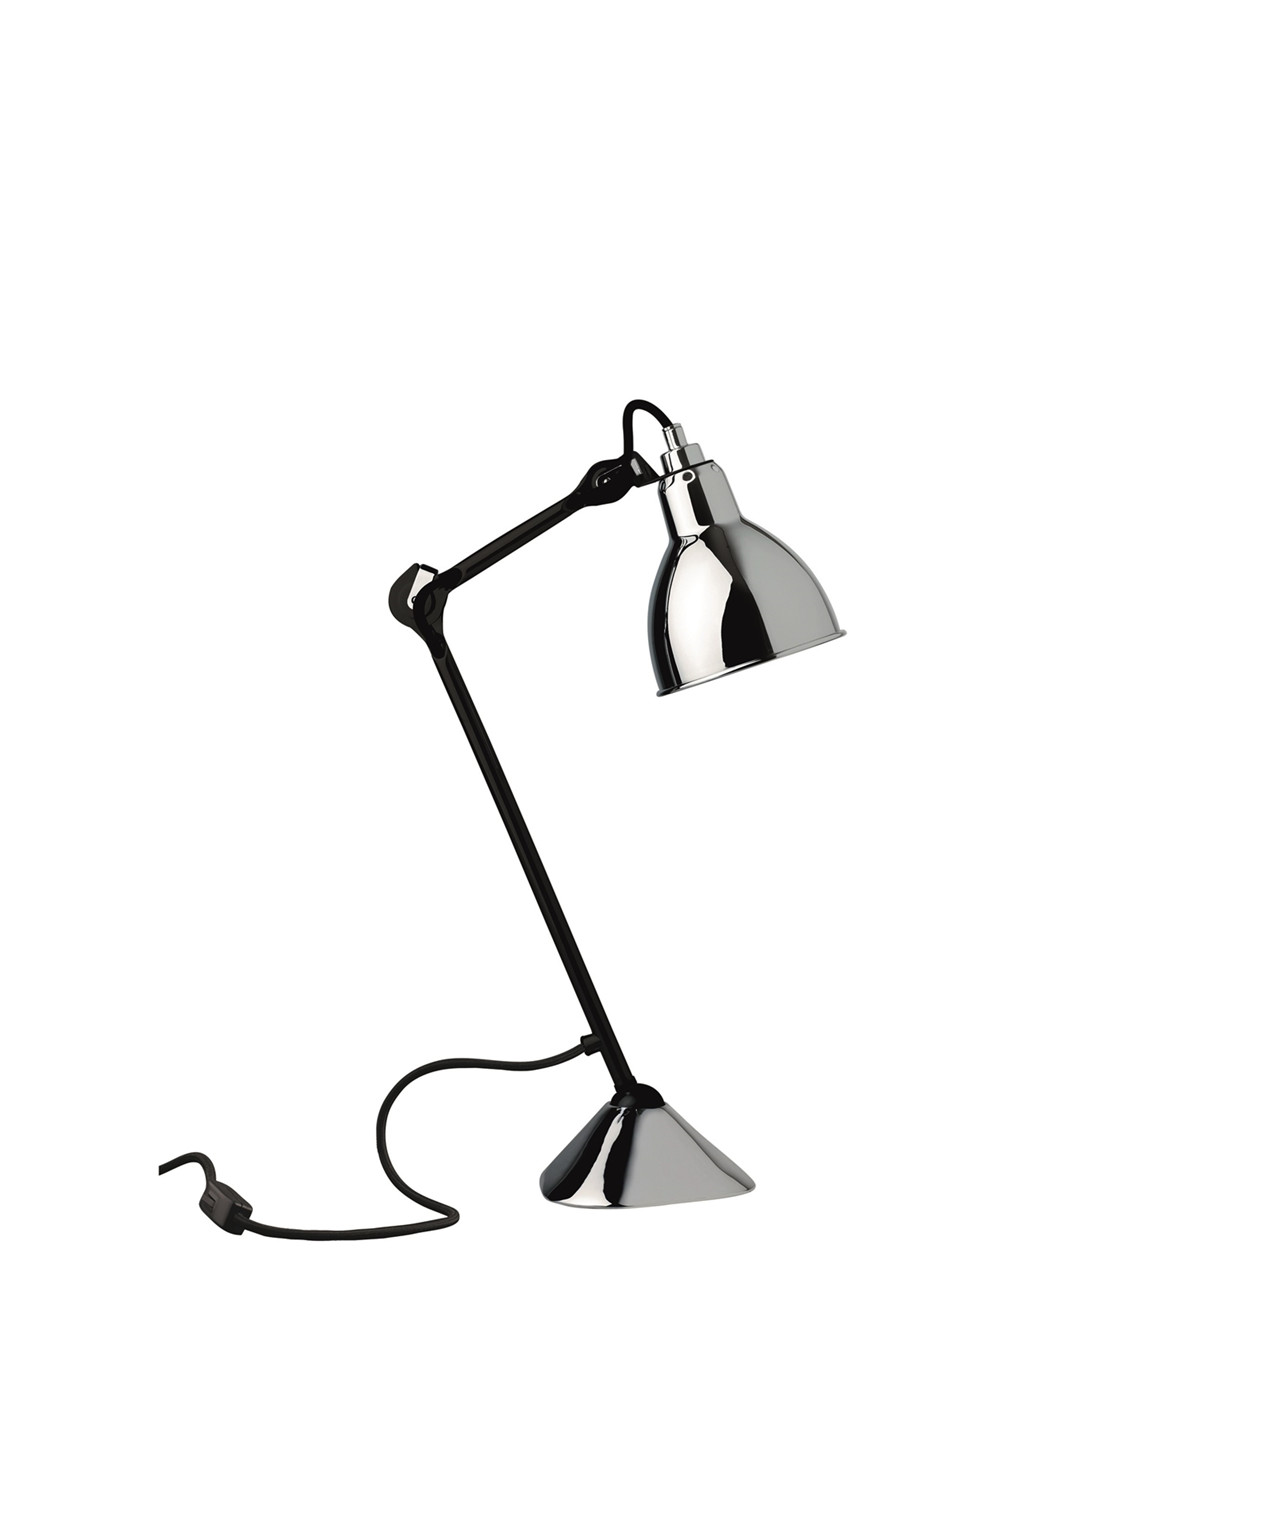 Image of   205 Bordlampe Krom/Sort - Lampe Gras